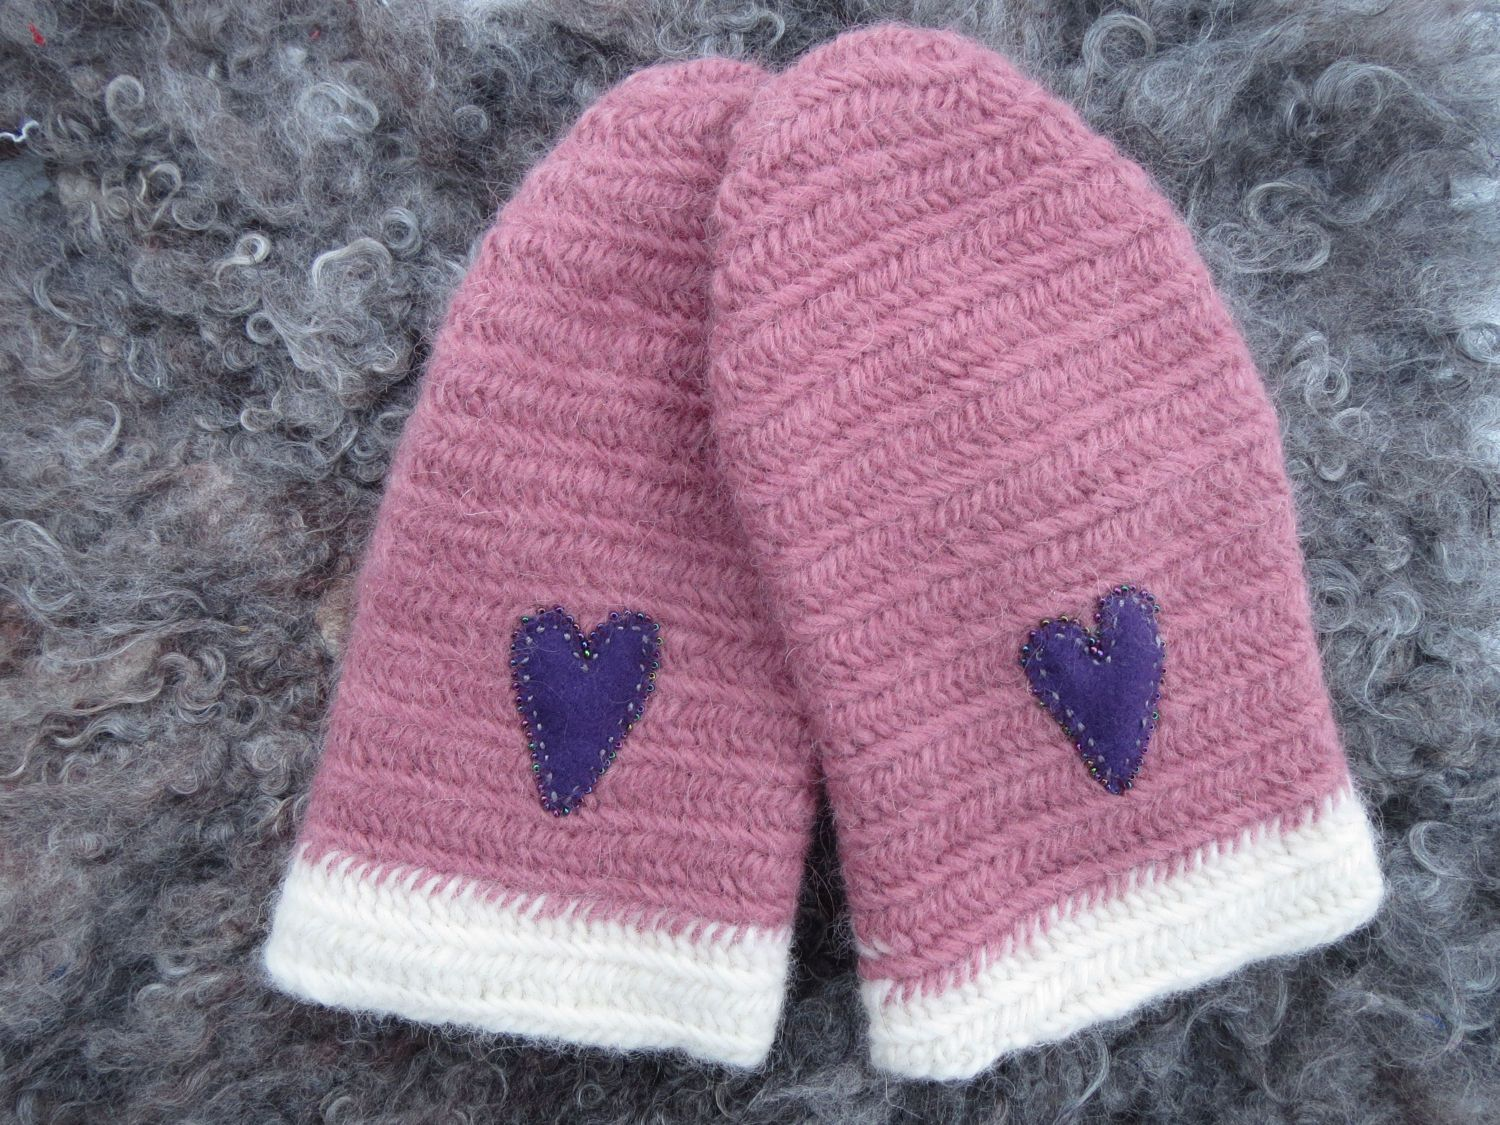 Pink mittens in Nålbindning-needlebinding-nalbinded by ArcticLightCrafts on Etsy